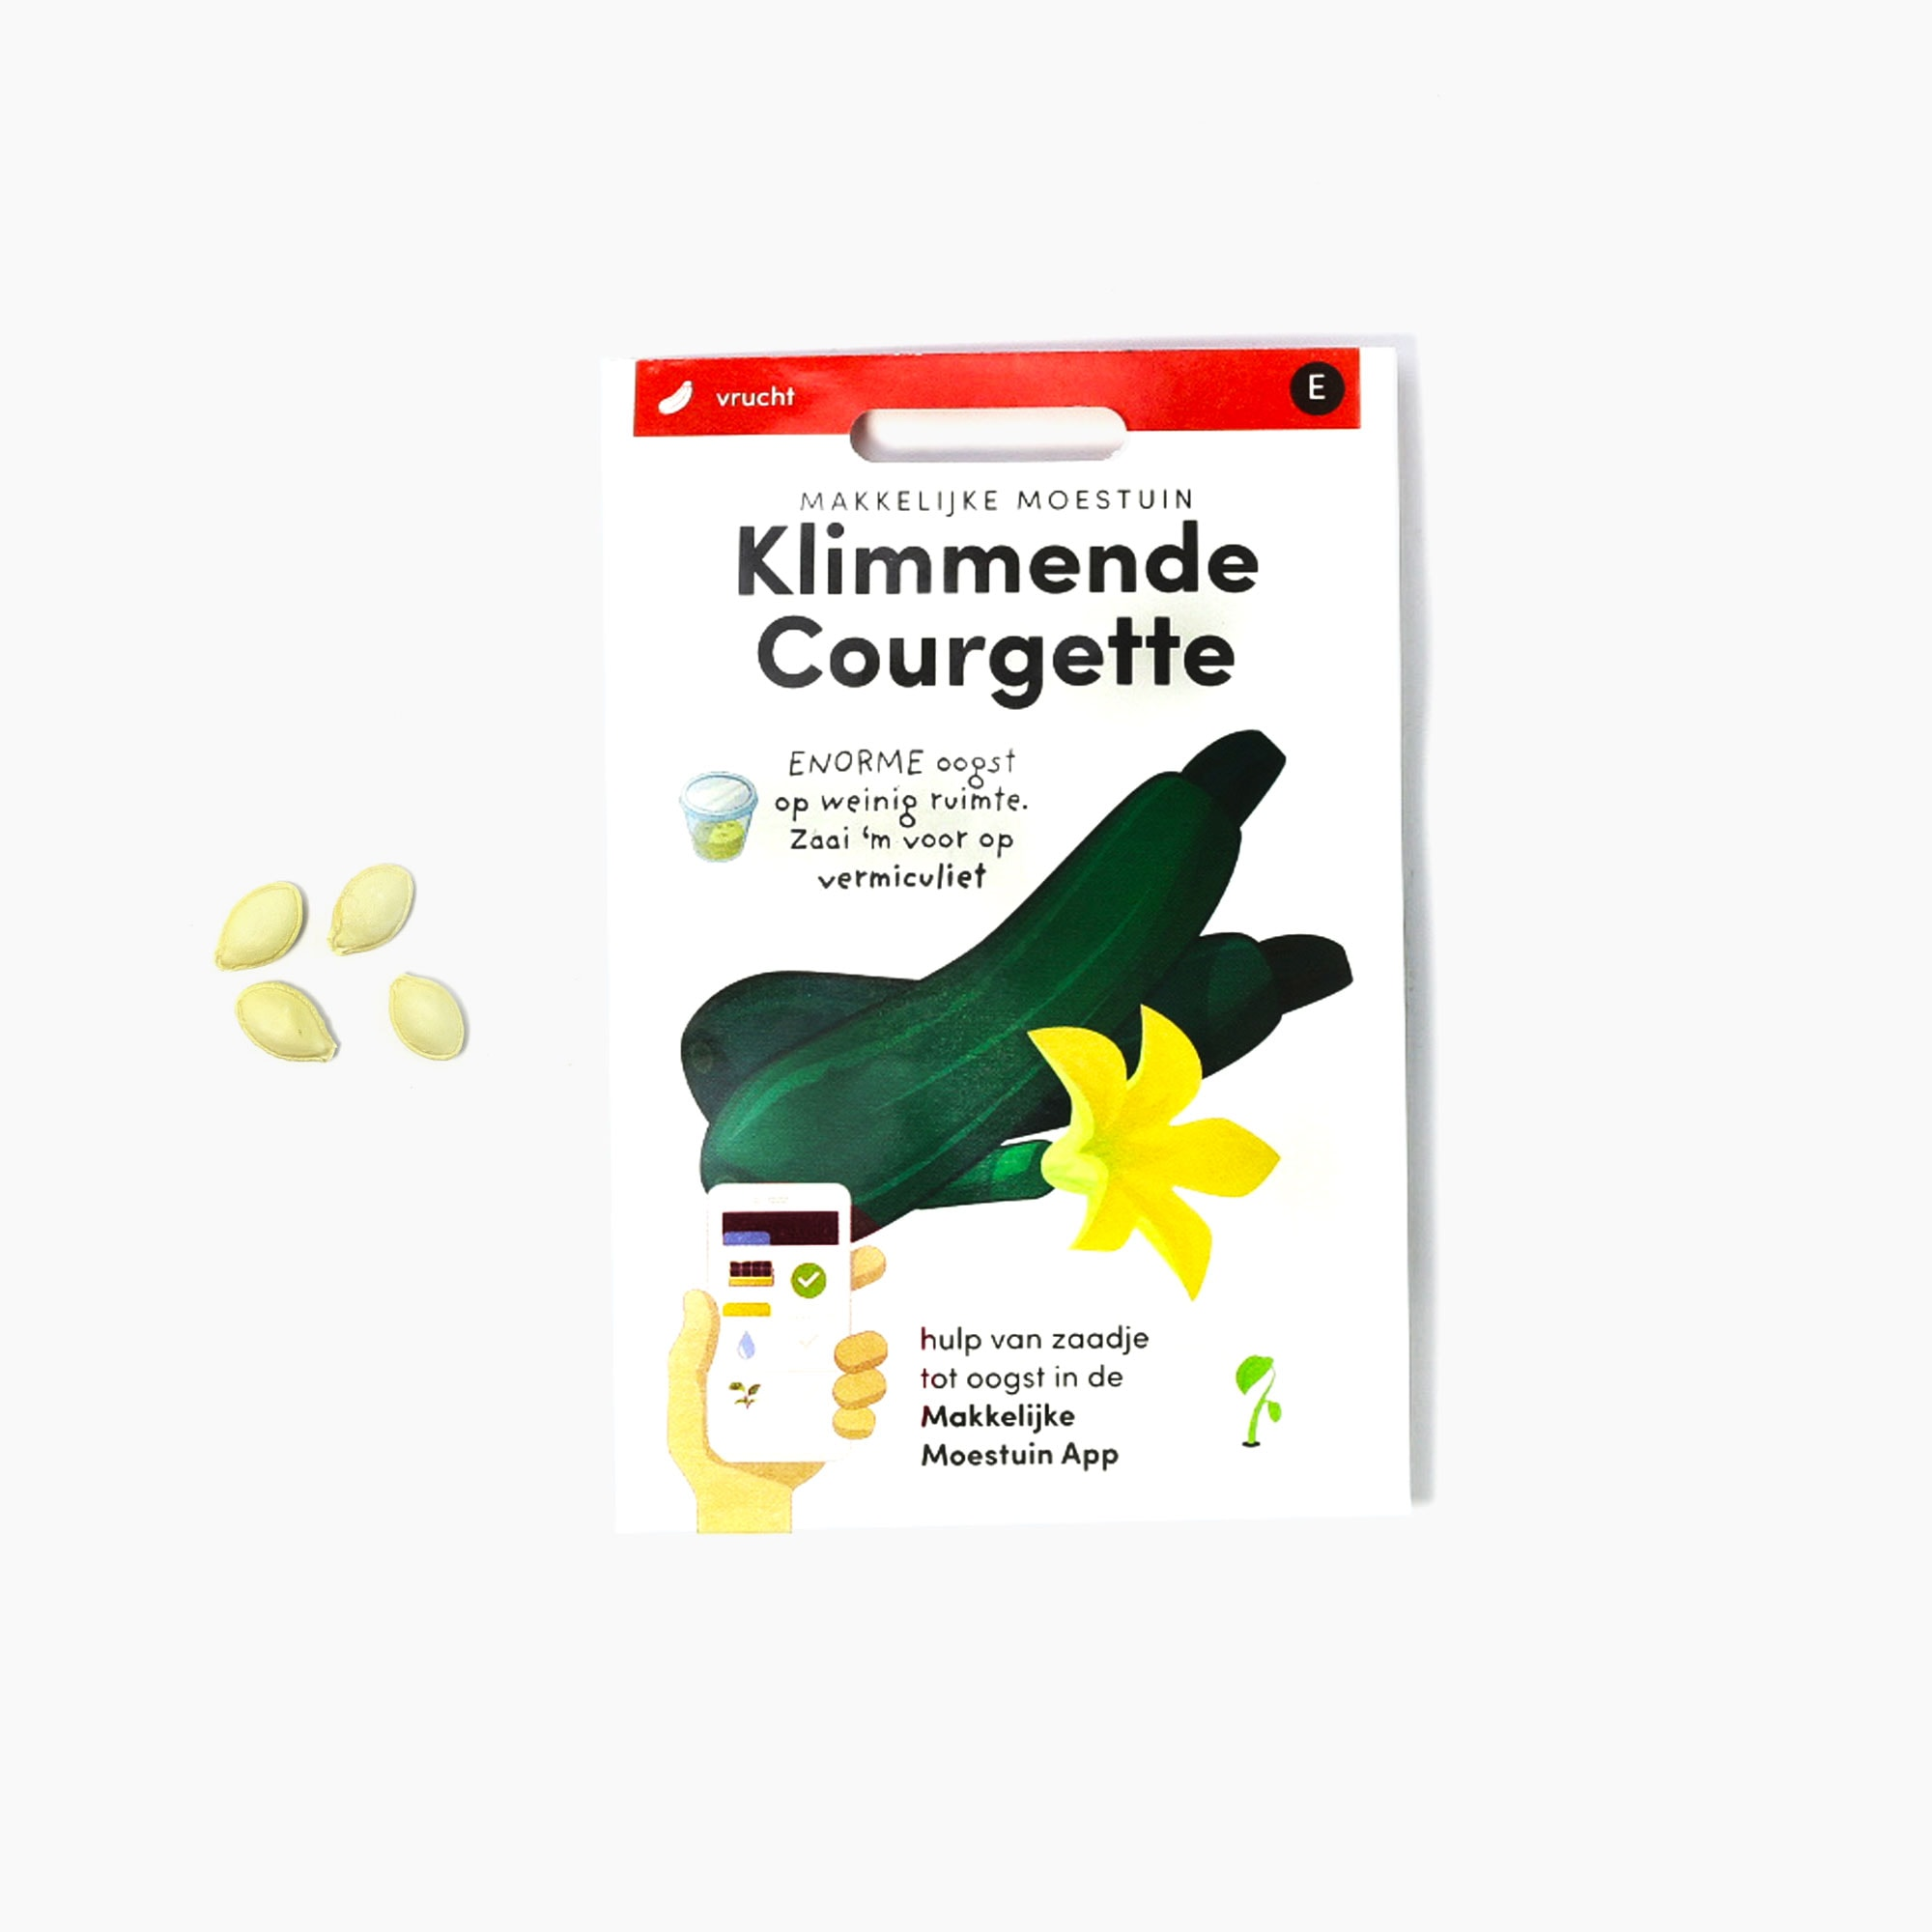 Courgette-(1).jpg